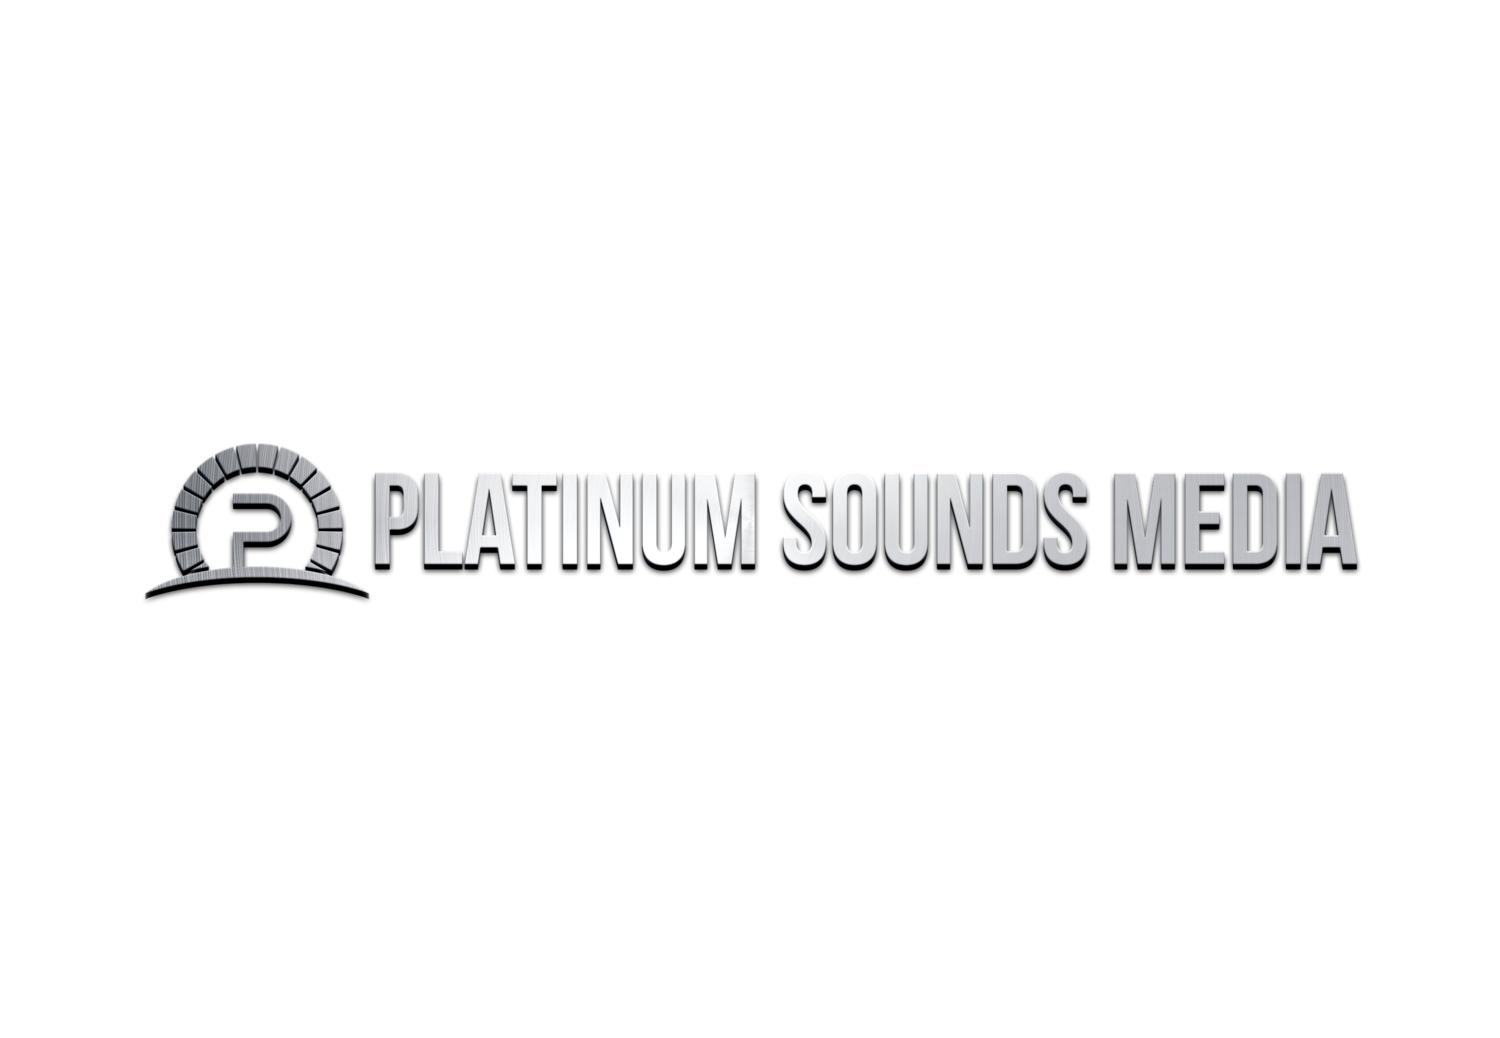 Platinum Sounds Media